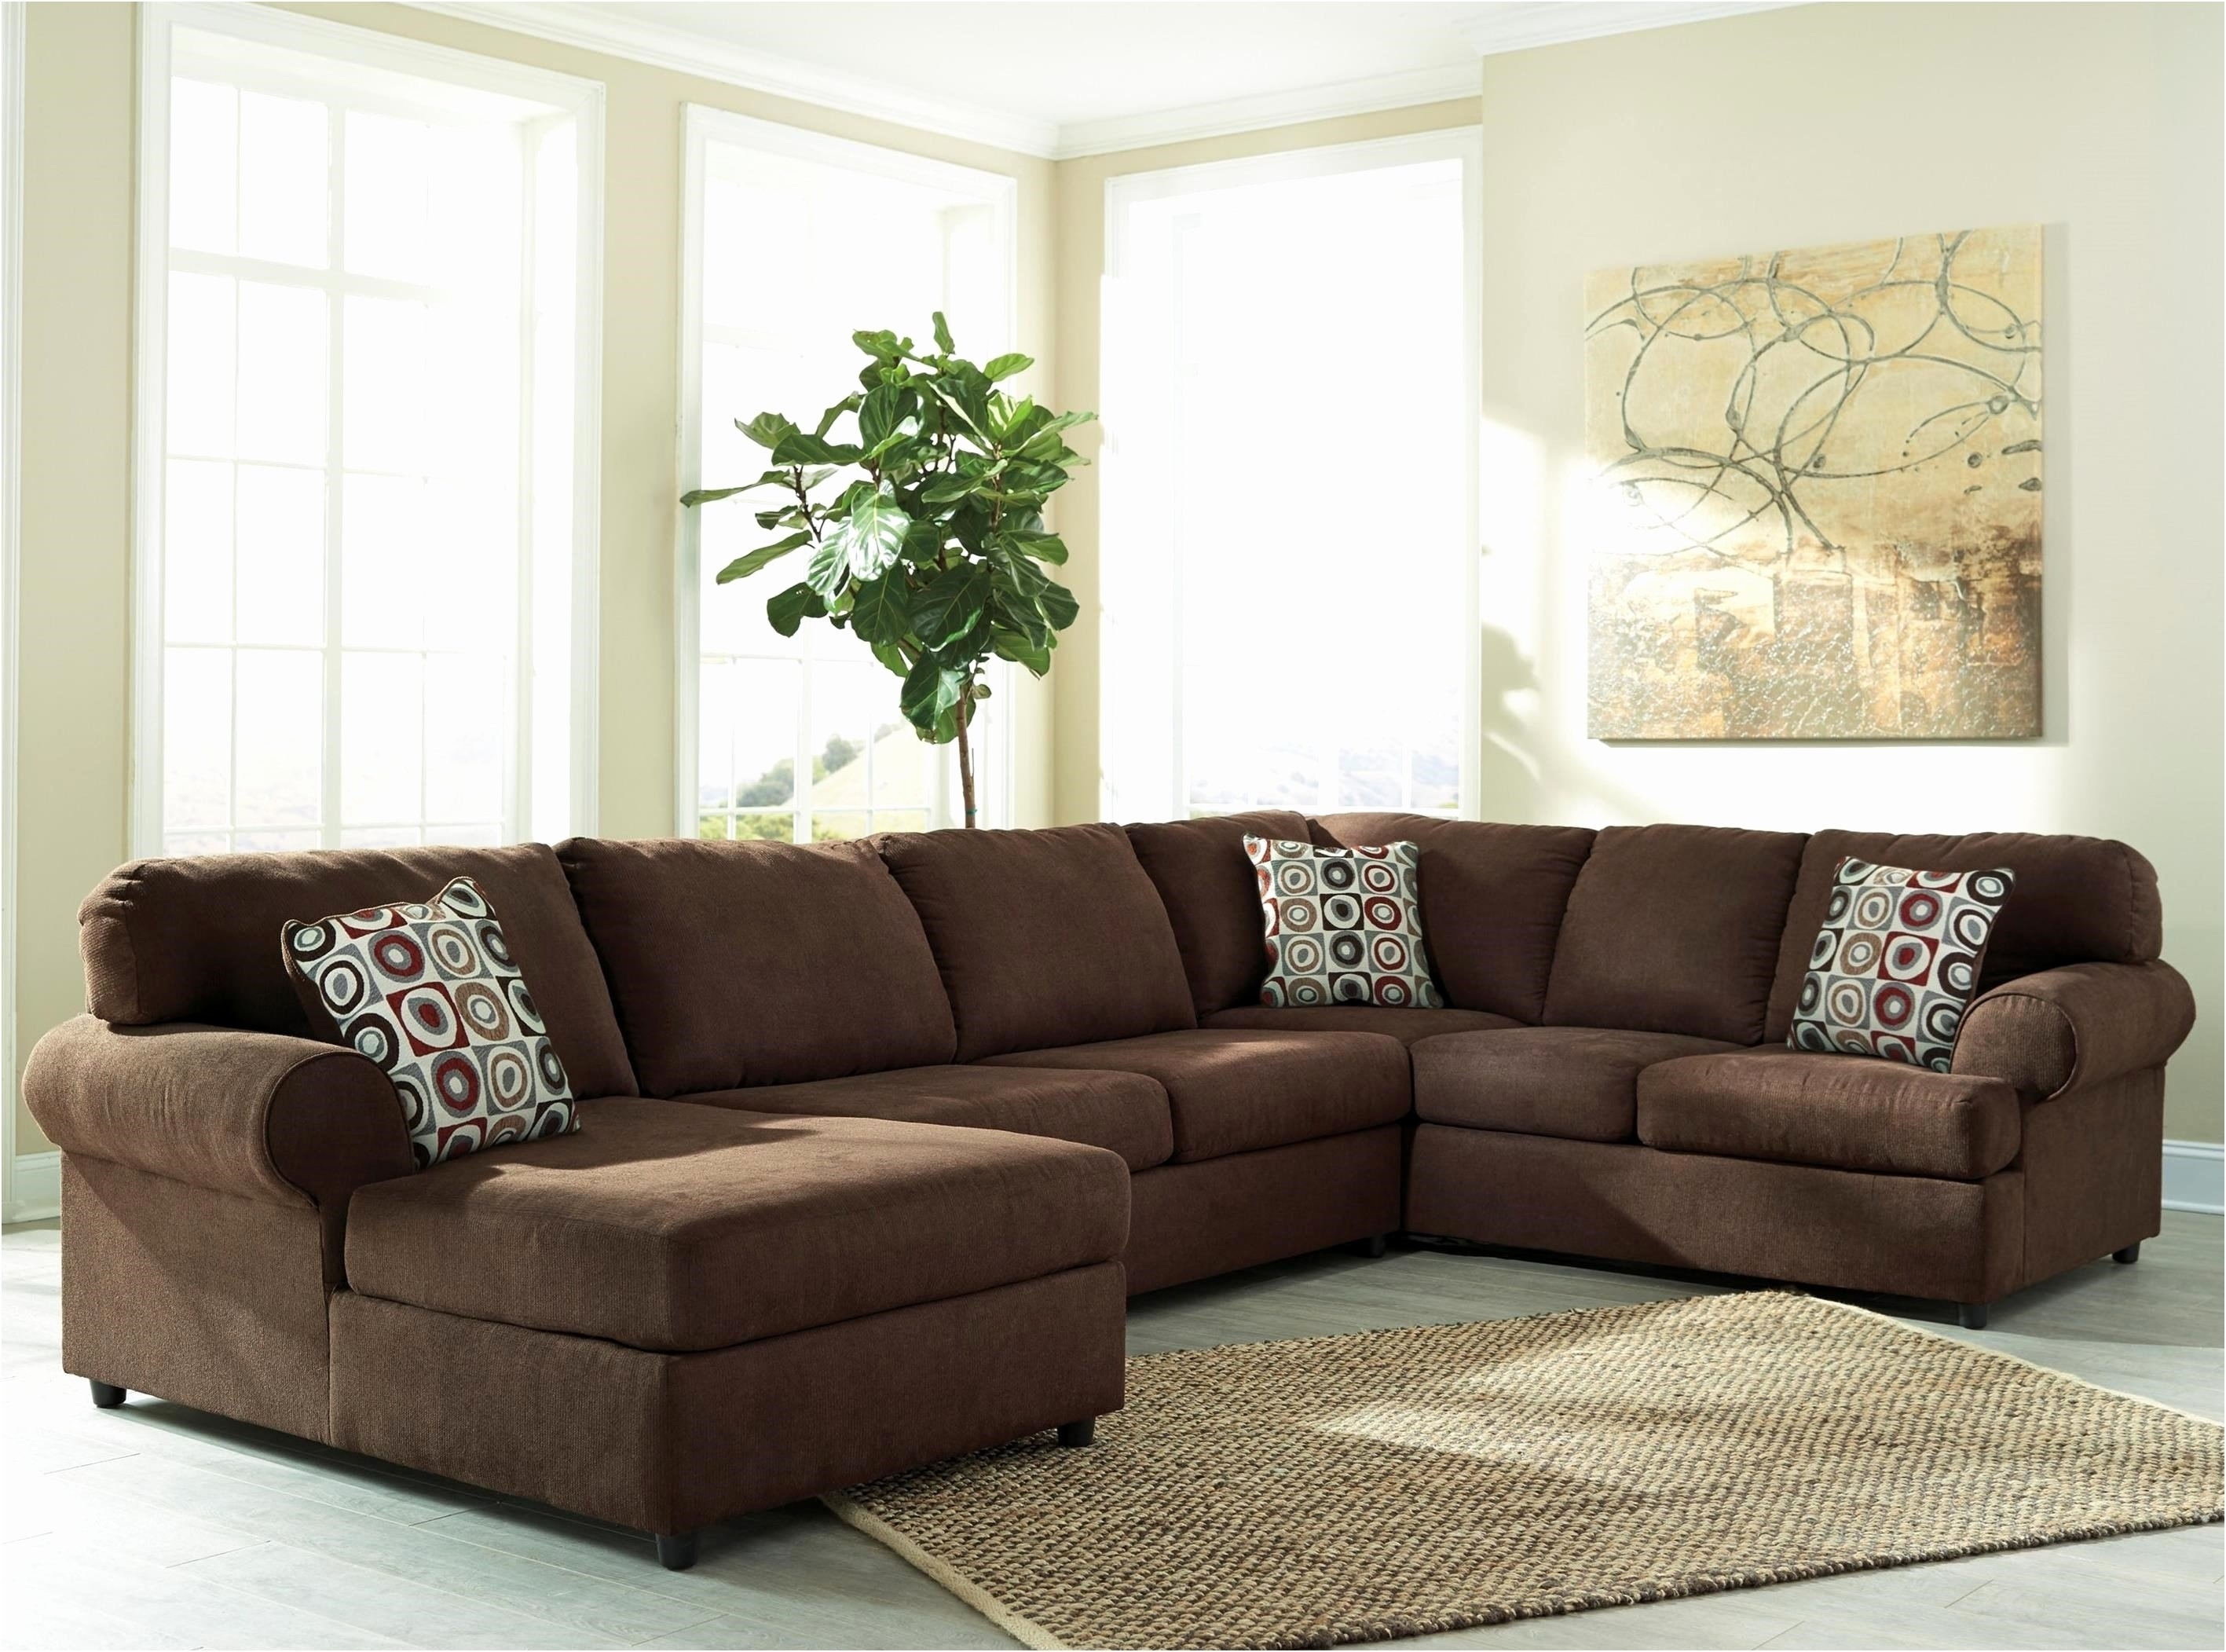 Havertys Furniture Sectionals Inspiration Probably Super Real regarding Arrowmask 2 Piece Sectionals With Sleeper & Right Facing Chaise (Image 10 of 30)